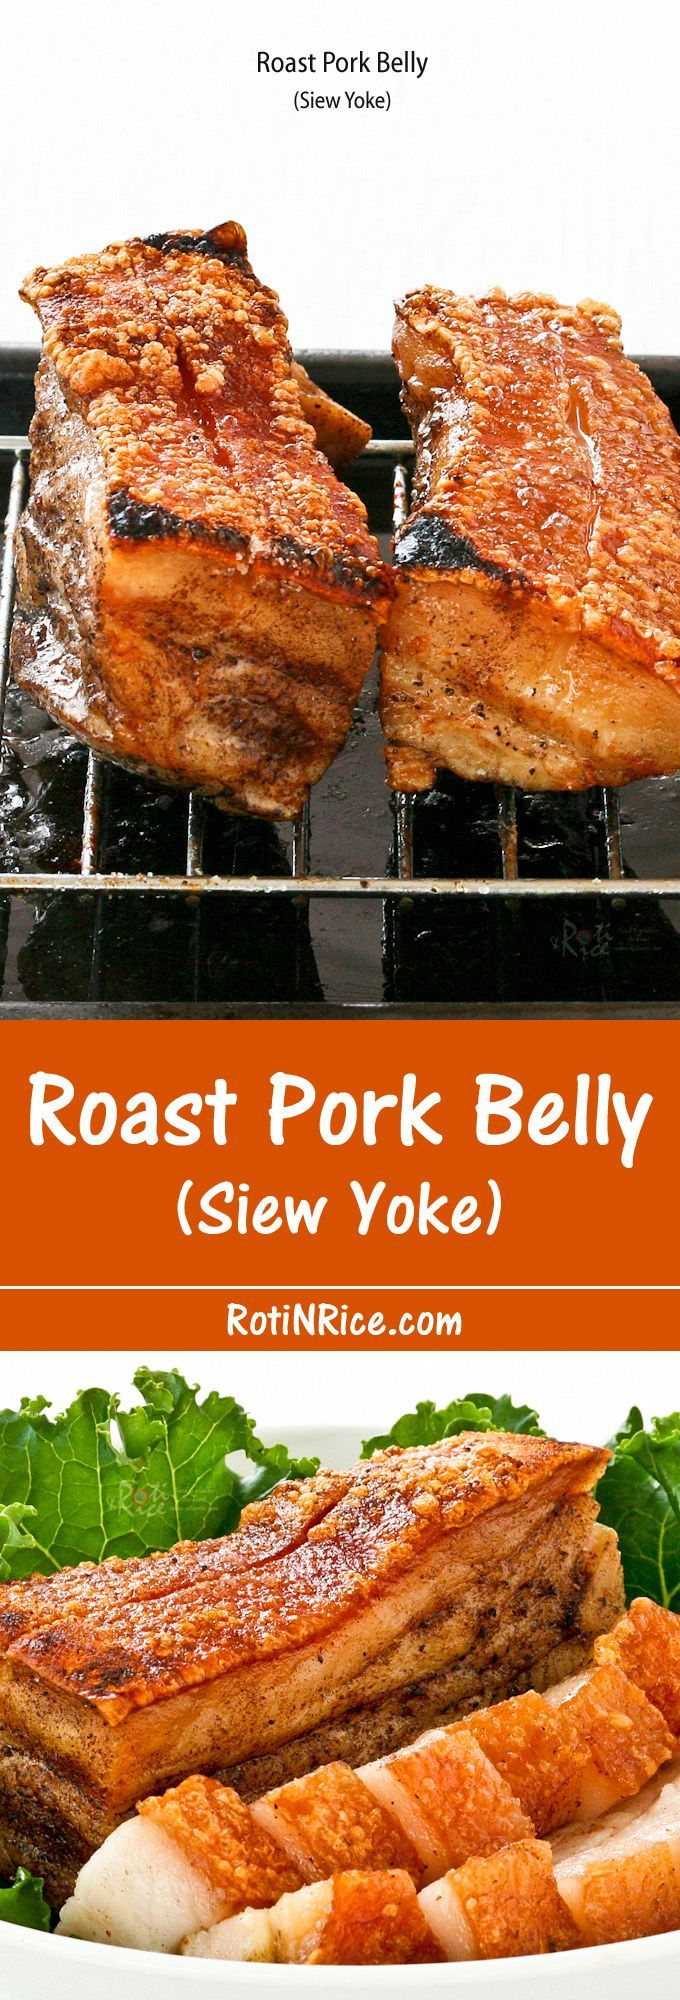 Crispy, crunchy, crackly Roast Pork Belly is a favorite of many. It can be made at home with just 4 ingredients and a little bit of patience. | http://RotiNRice.com